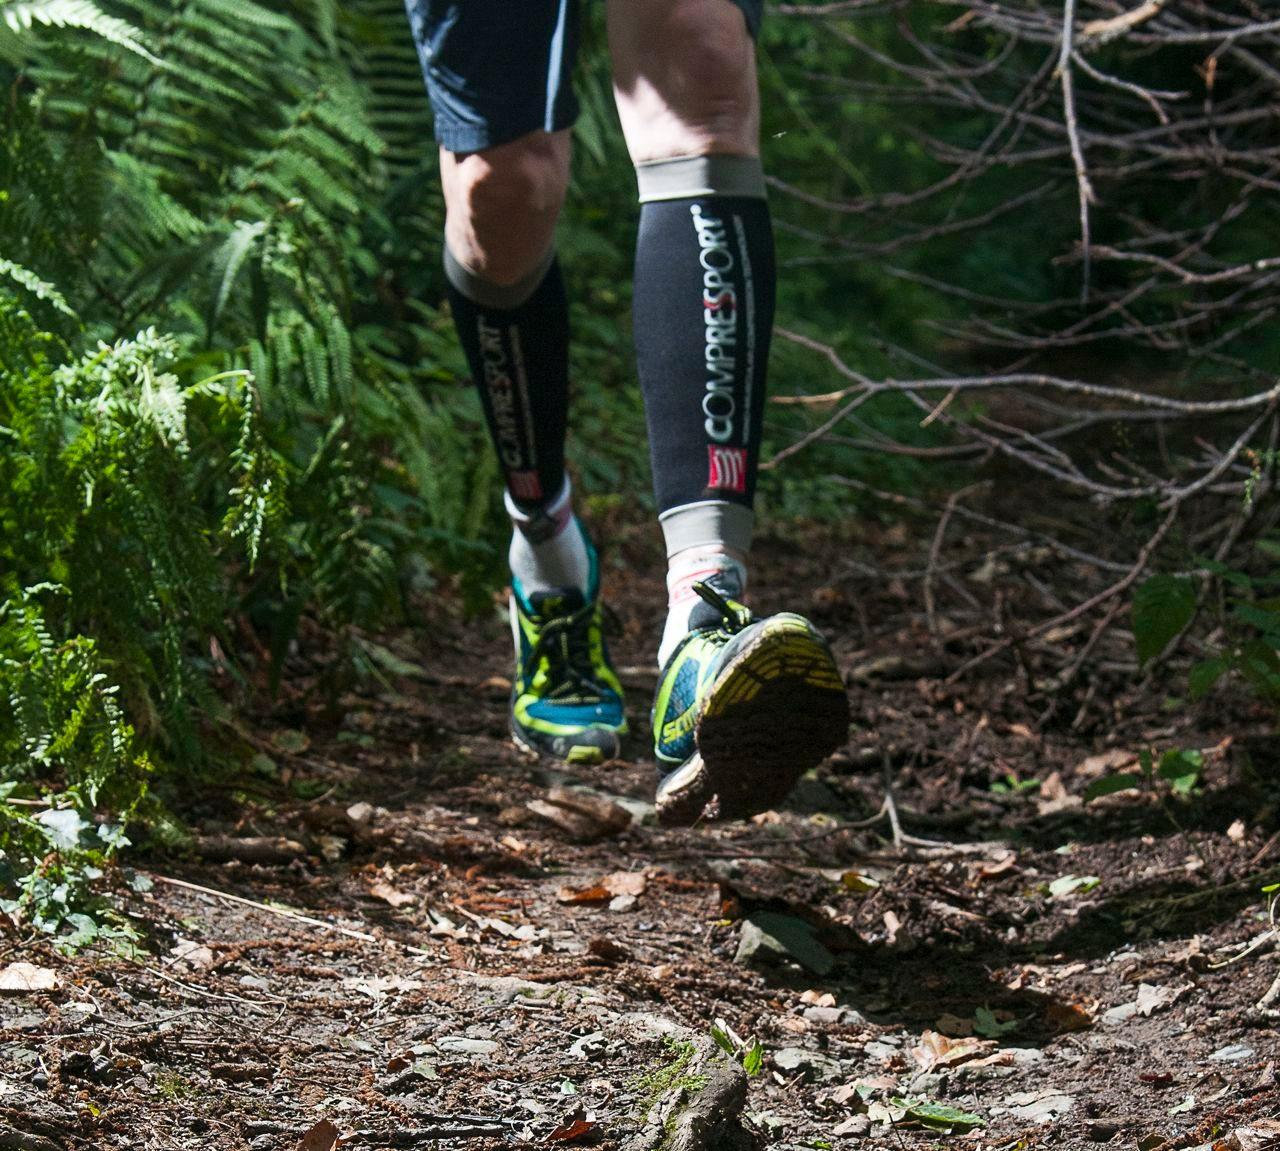 Triathlete wearing calf guards